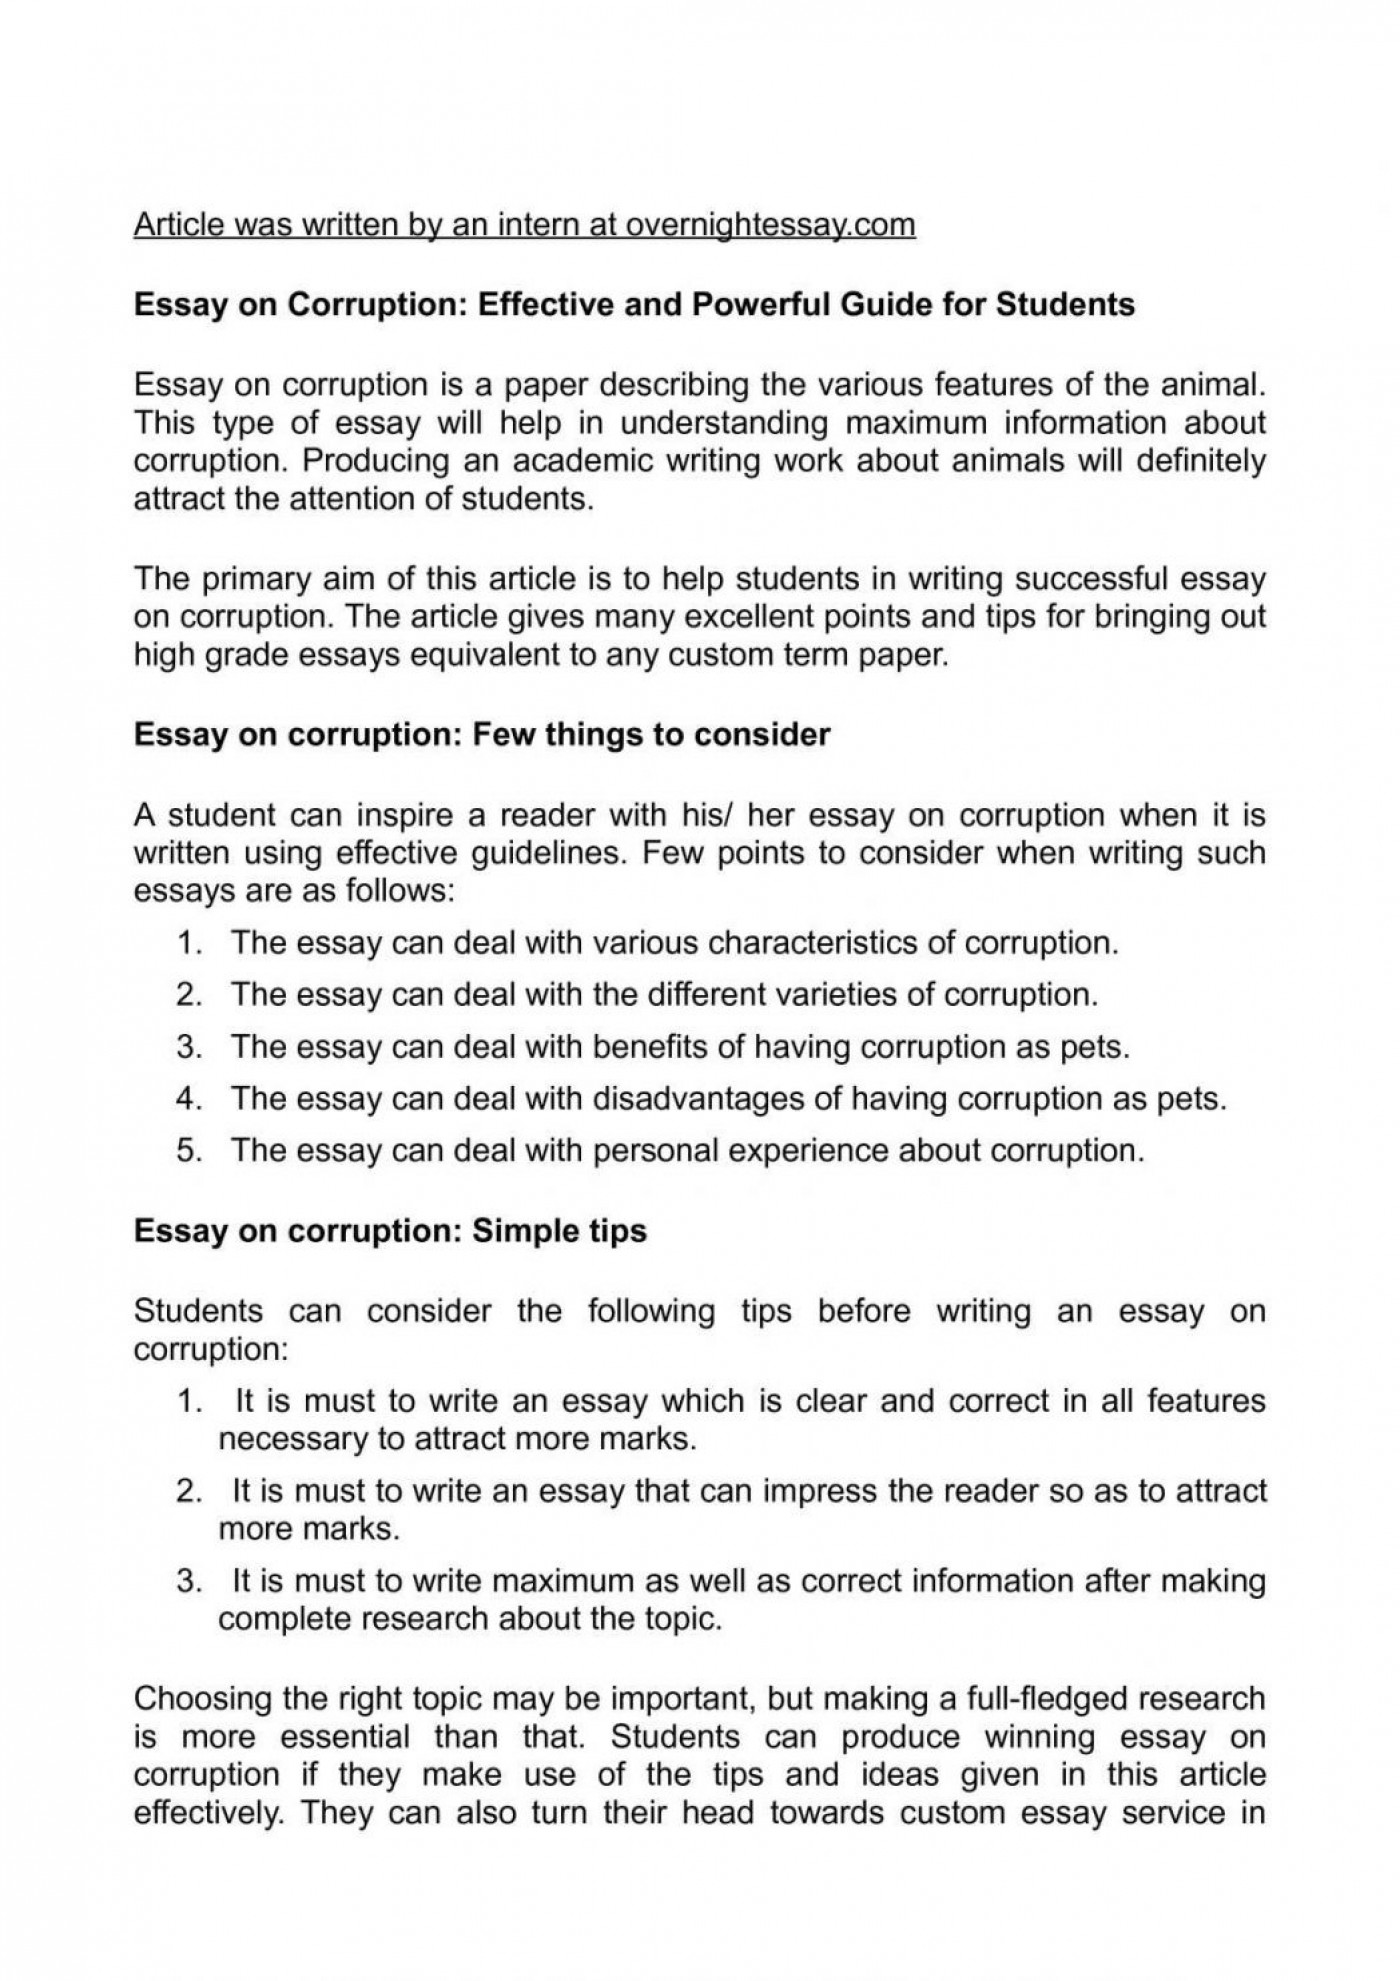 015 How To Write This I Believe Essay Easy Essays Calam Atilde Copy O On Corruption Effective Samples Good Topics Template 1048x1483 Fantastic A What Things 1400